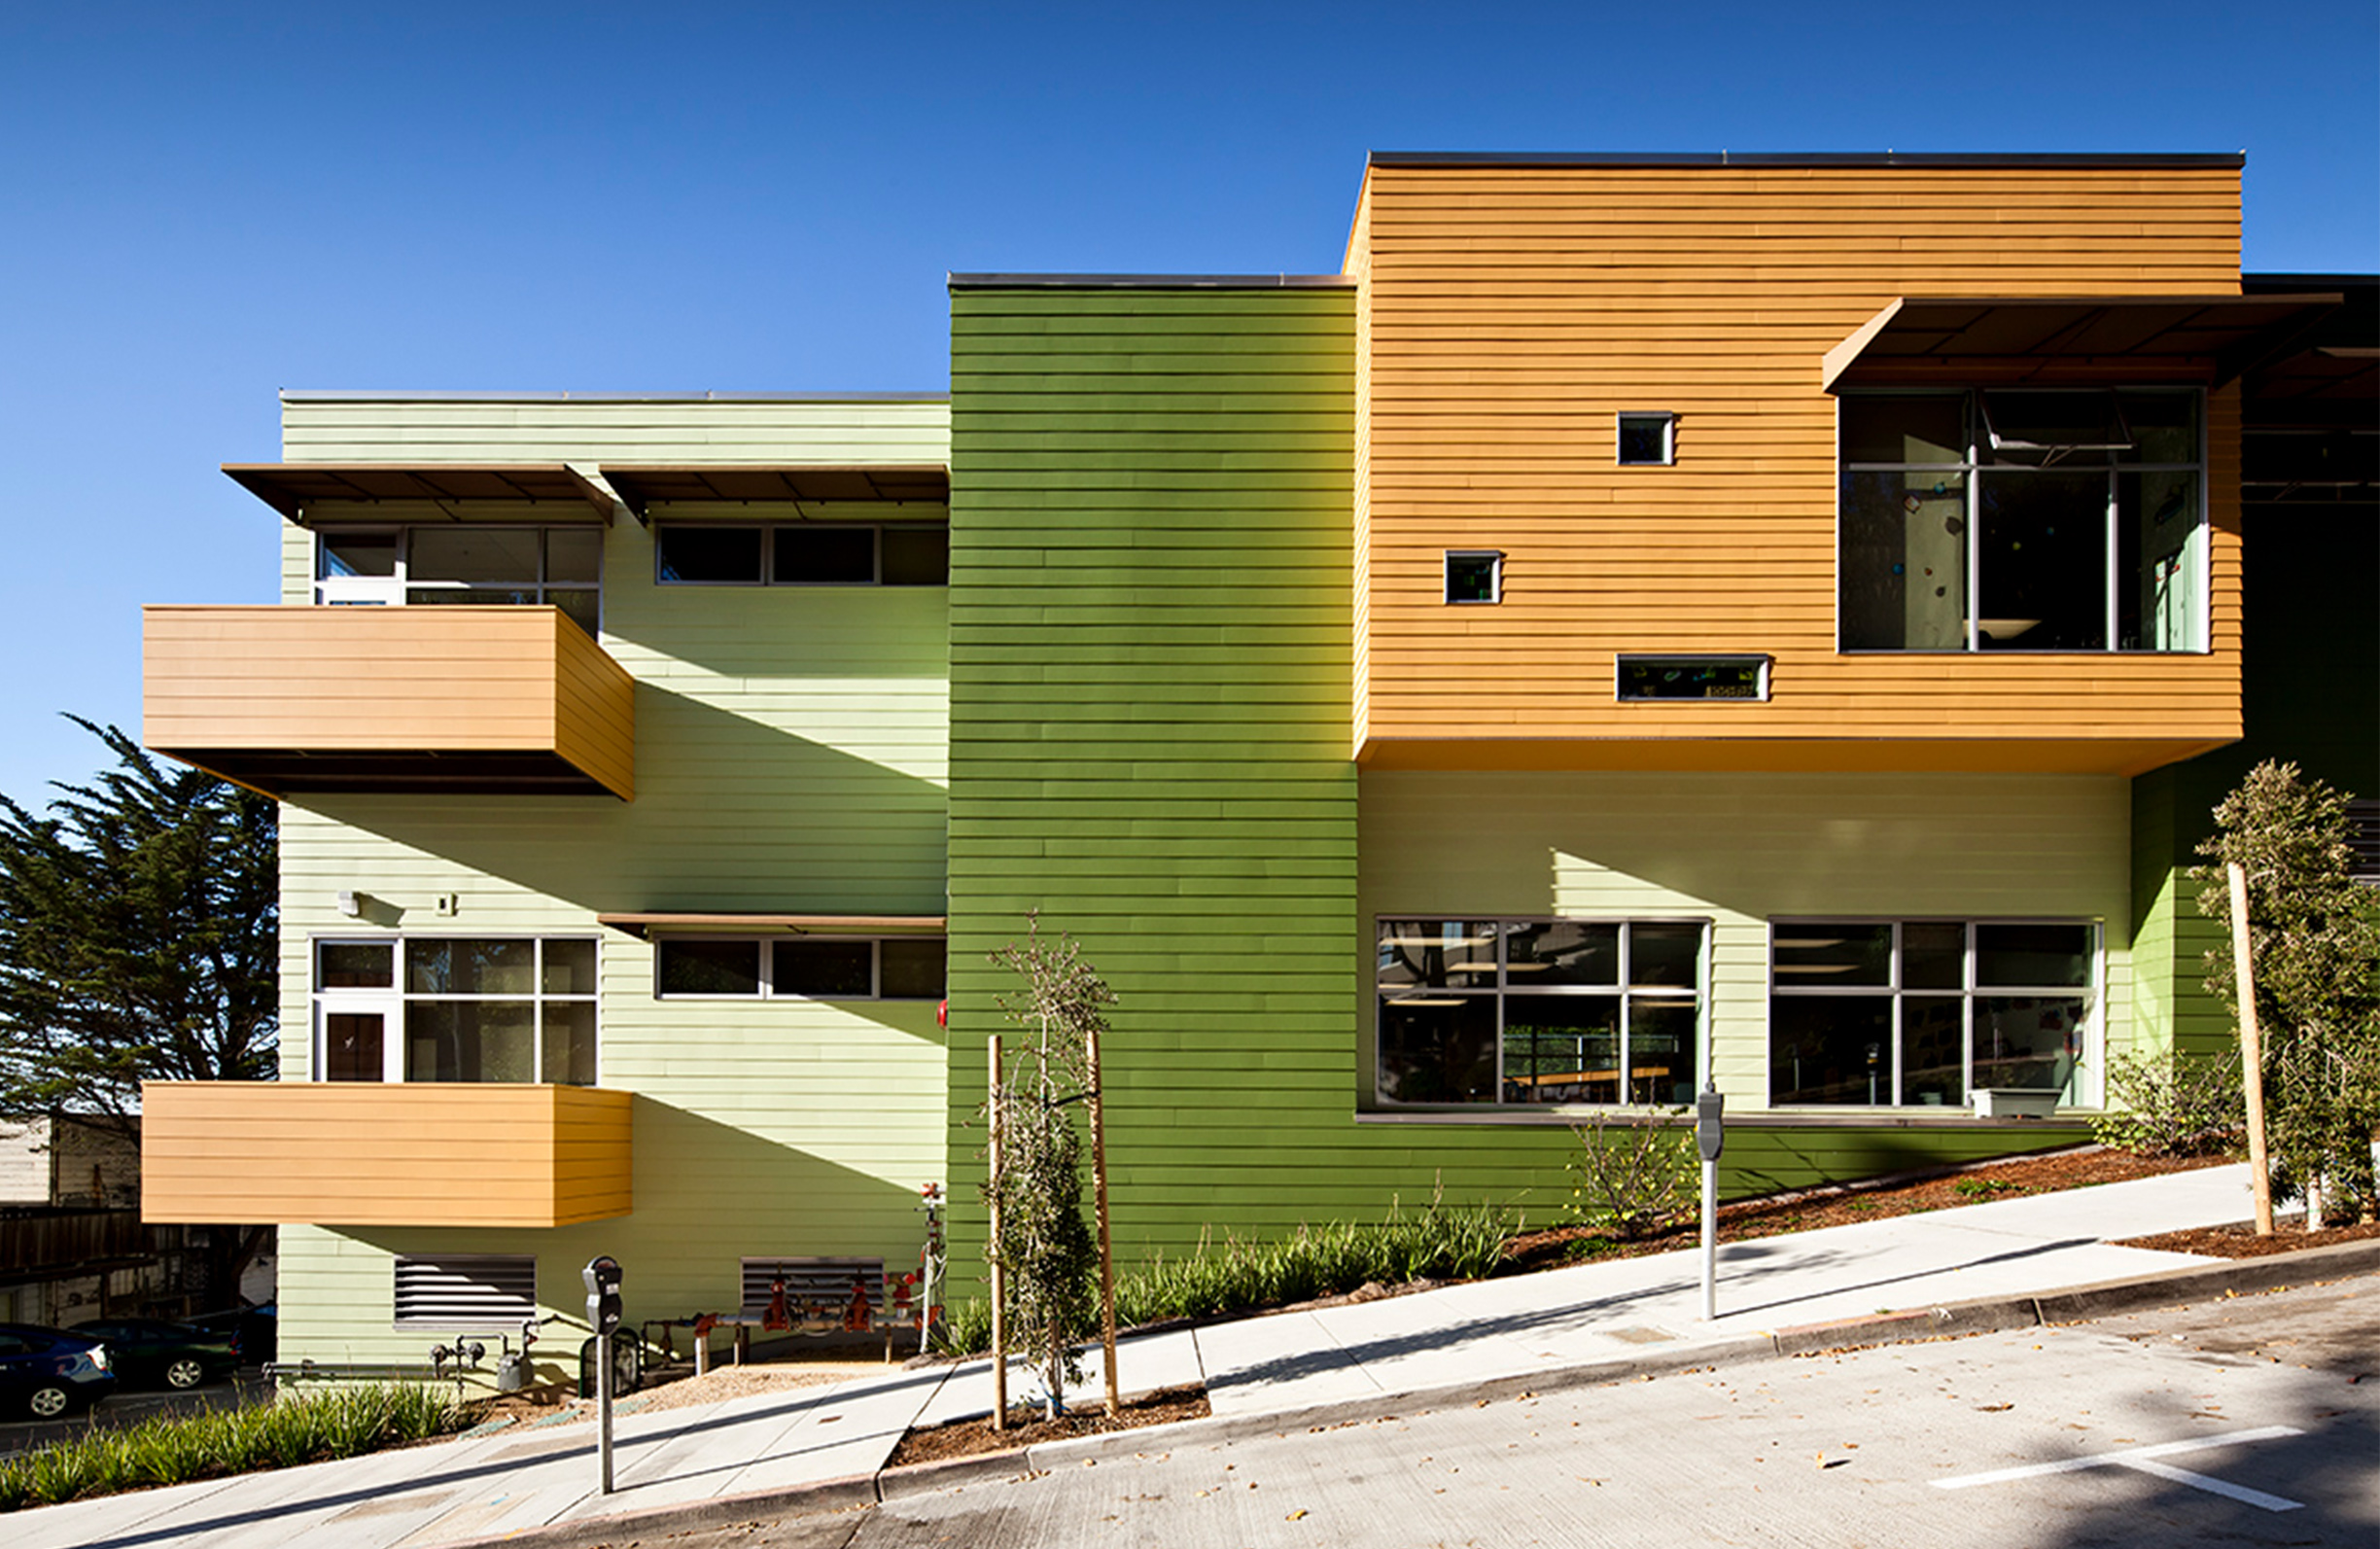 UC San Francisco Kirkham Child Development Center Exterior San Francisco Facade Outside Daytime